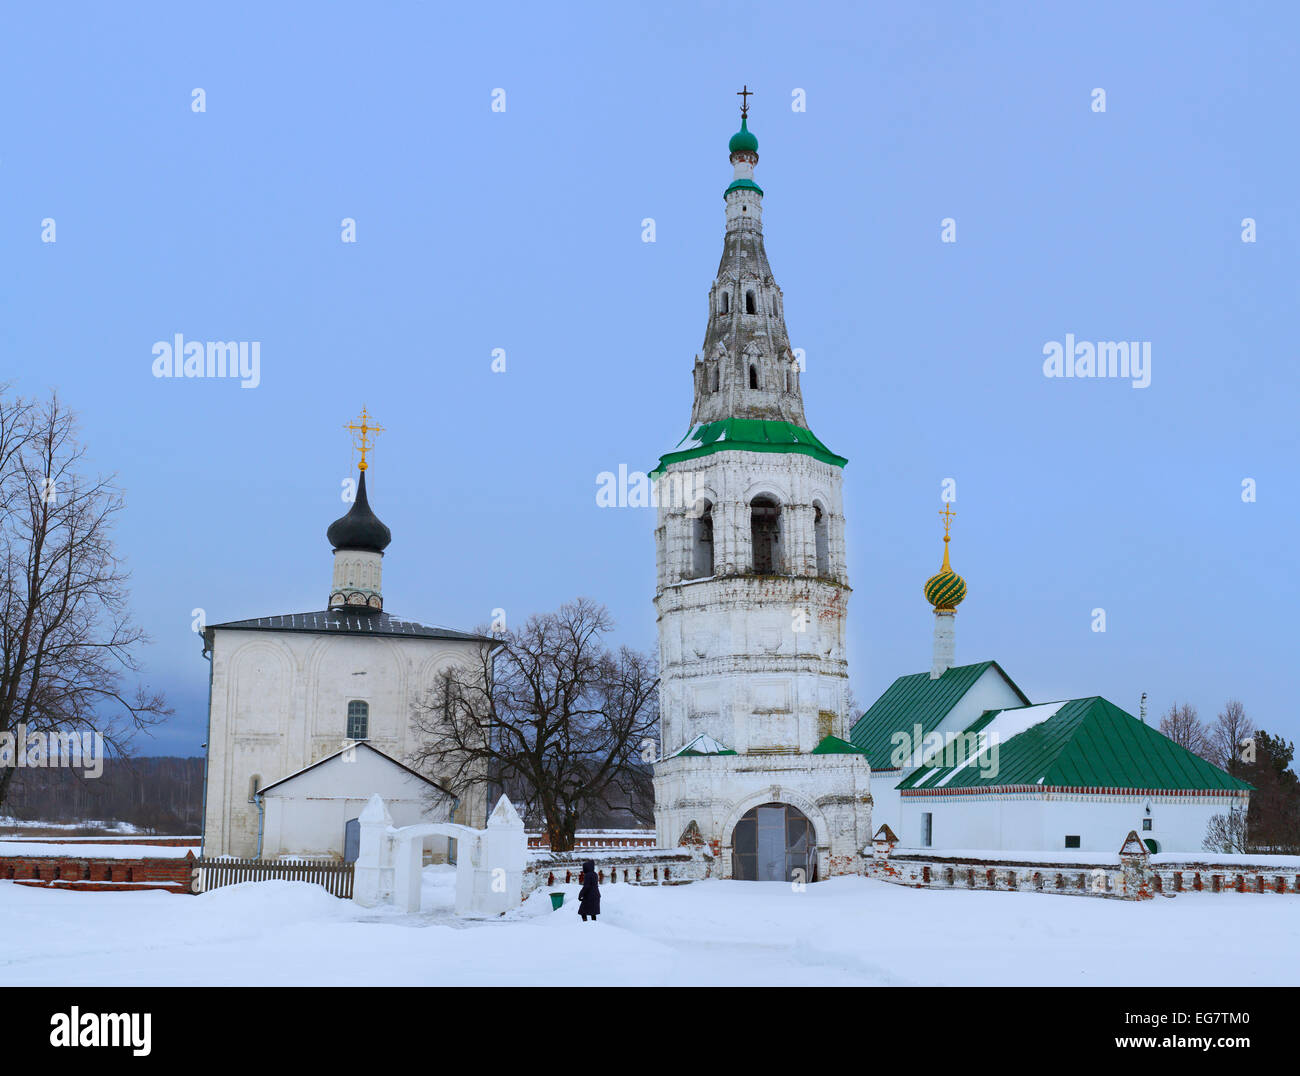 Church of Boris and Gleb, Kideksha, Vladimir region, Russia - Stock Image